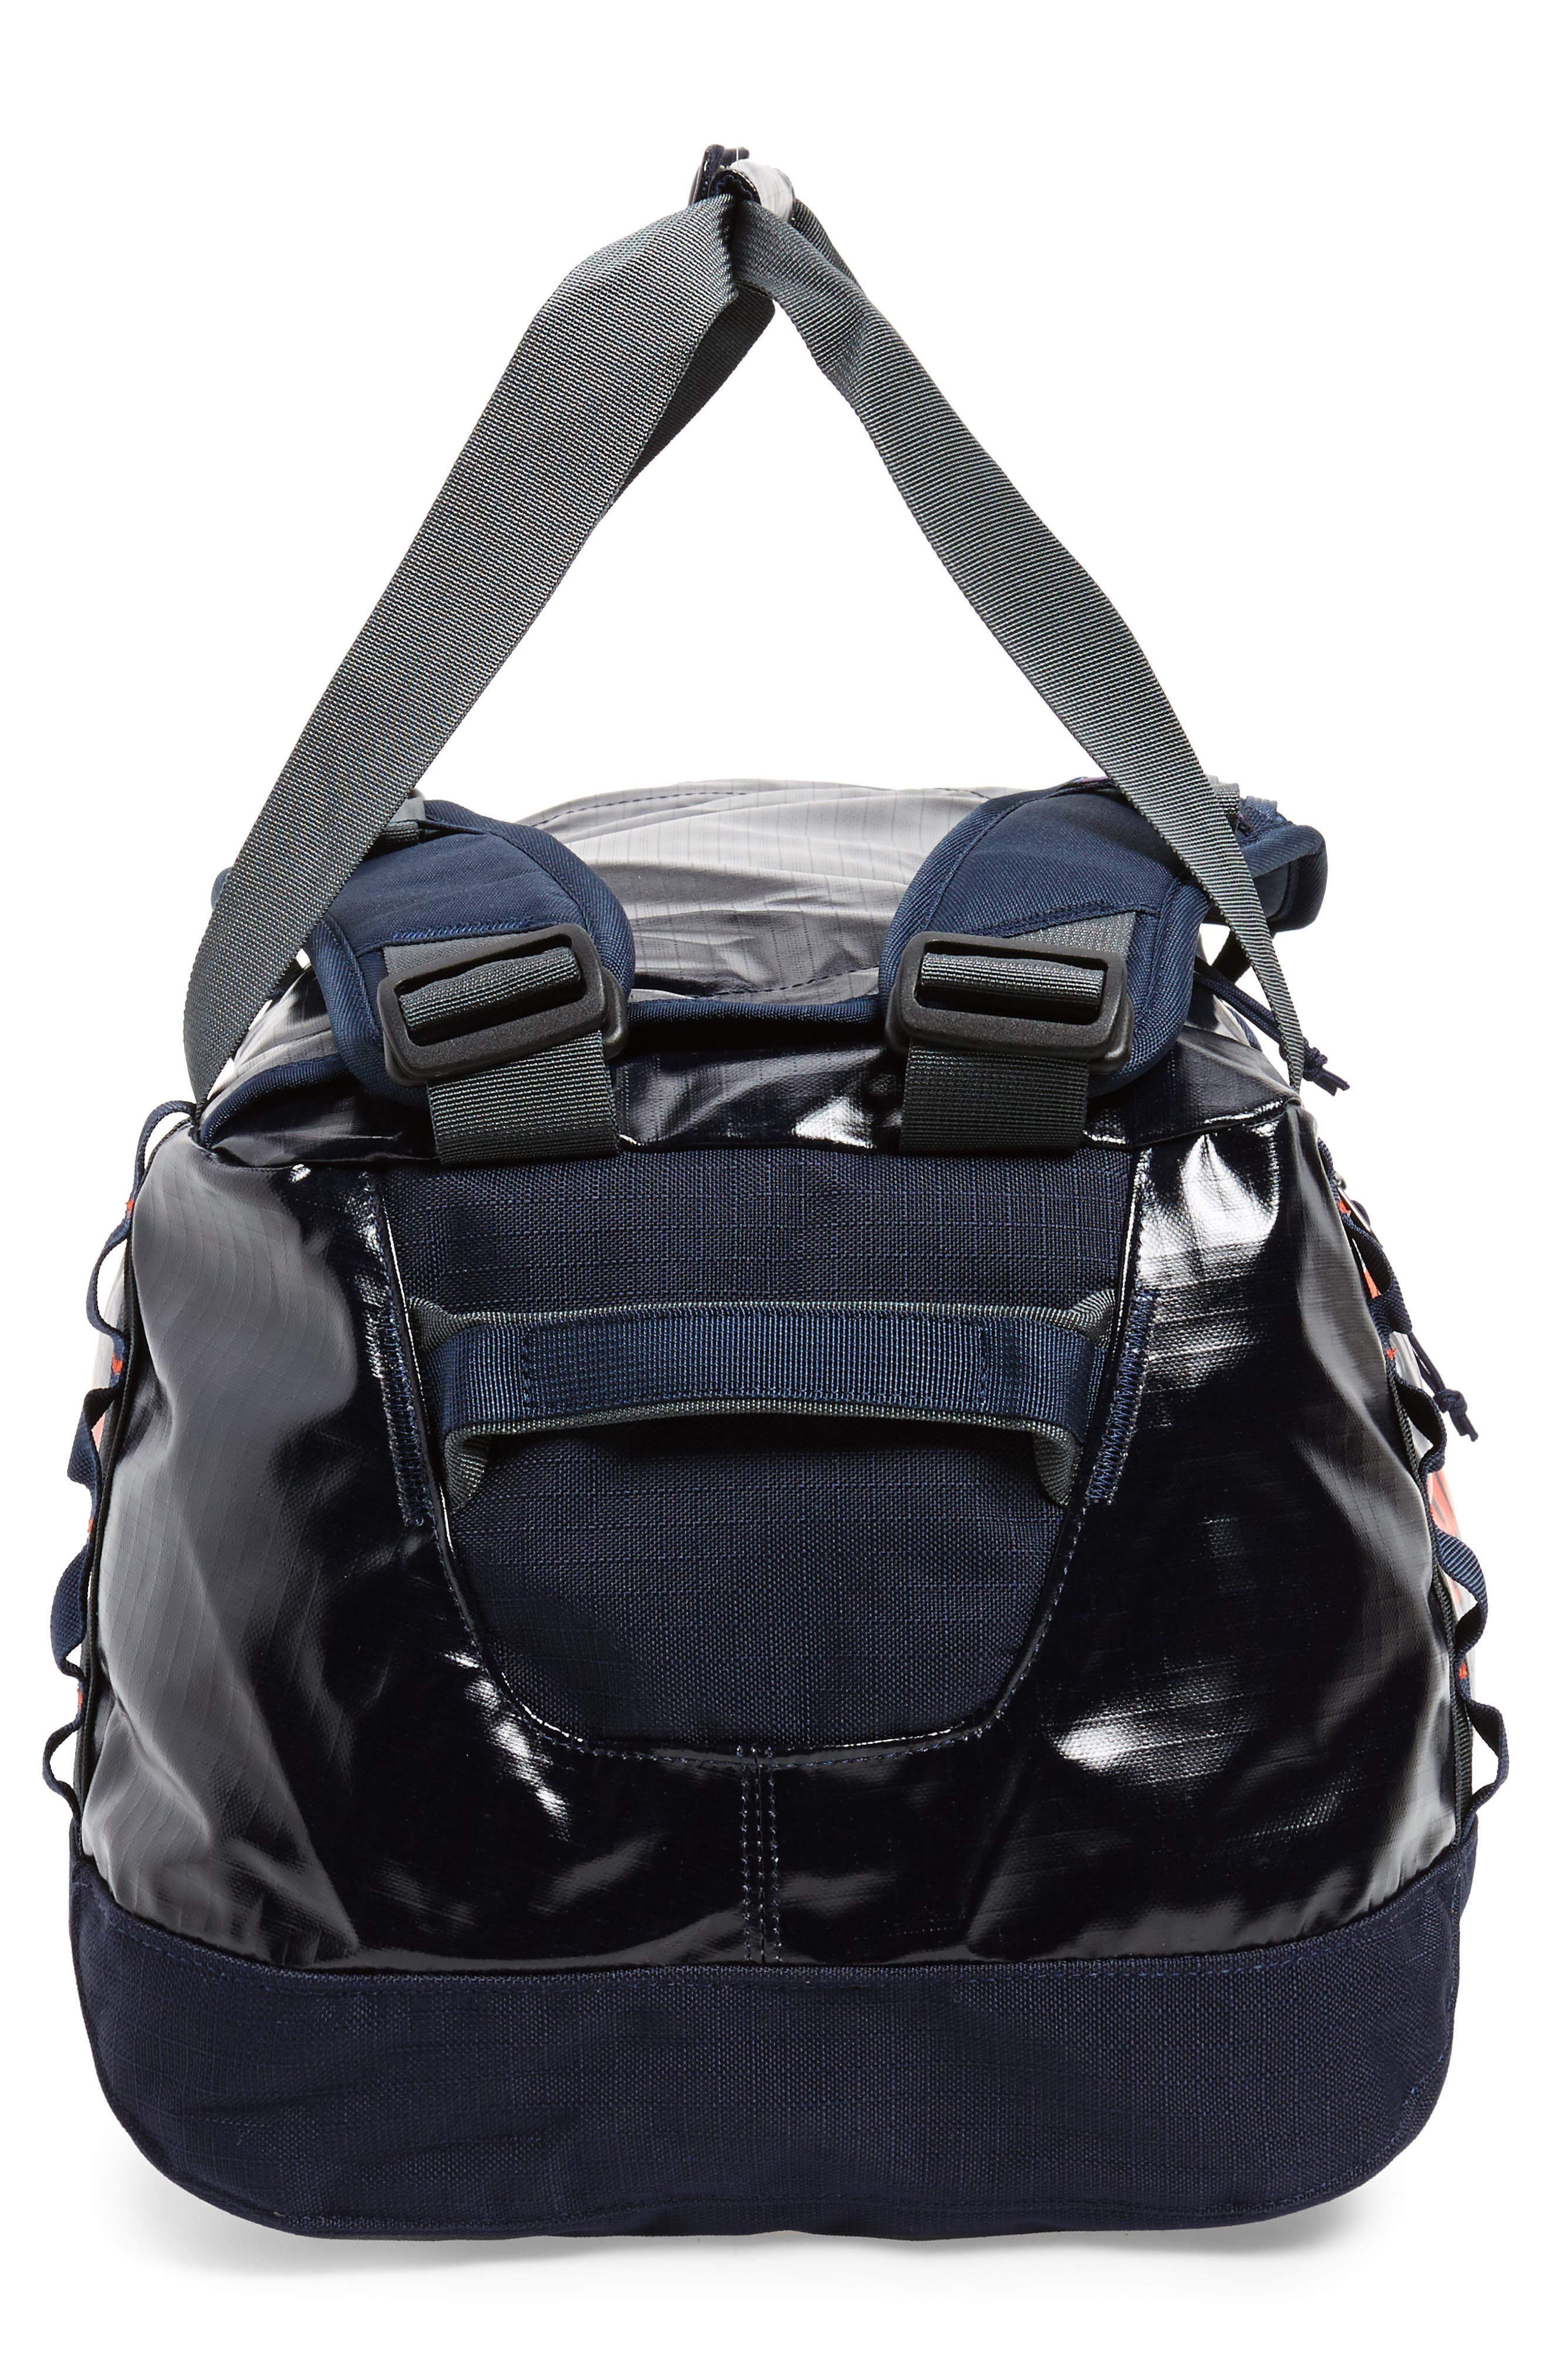 Black Hole Water Repellent Duffel Bag,                             Alternate thumbnail 4, color,                             Navy Blue W/ Paintbrush Red